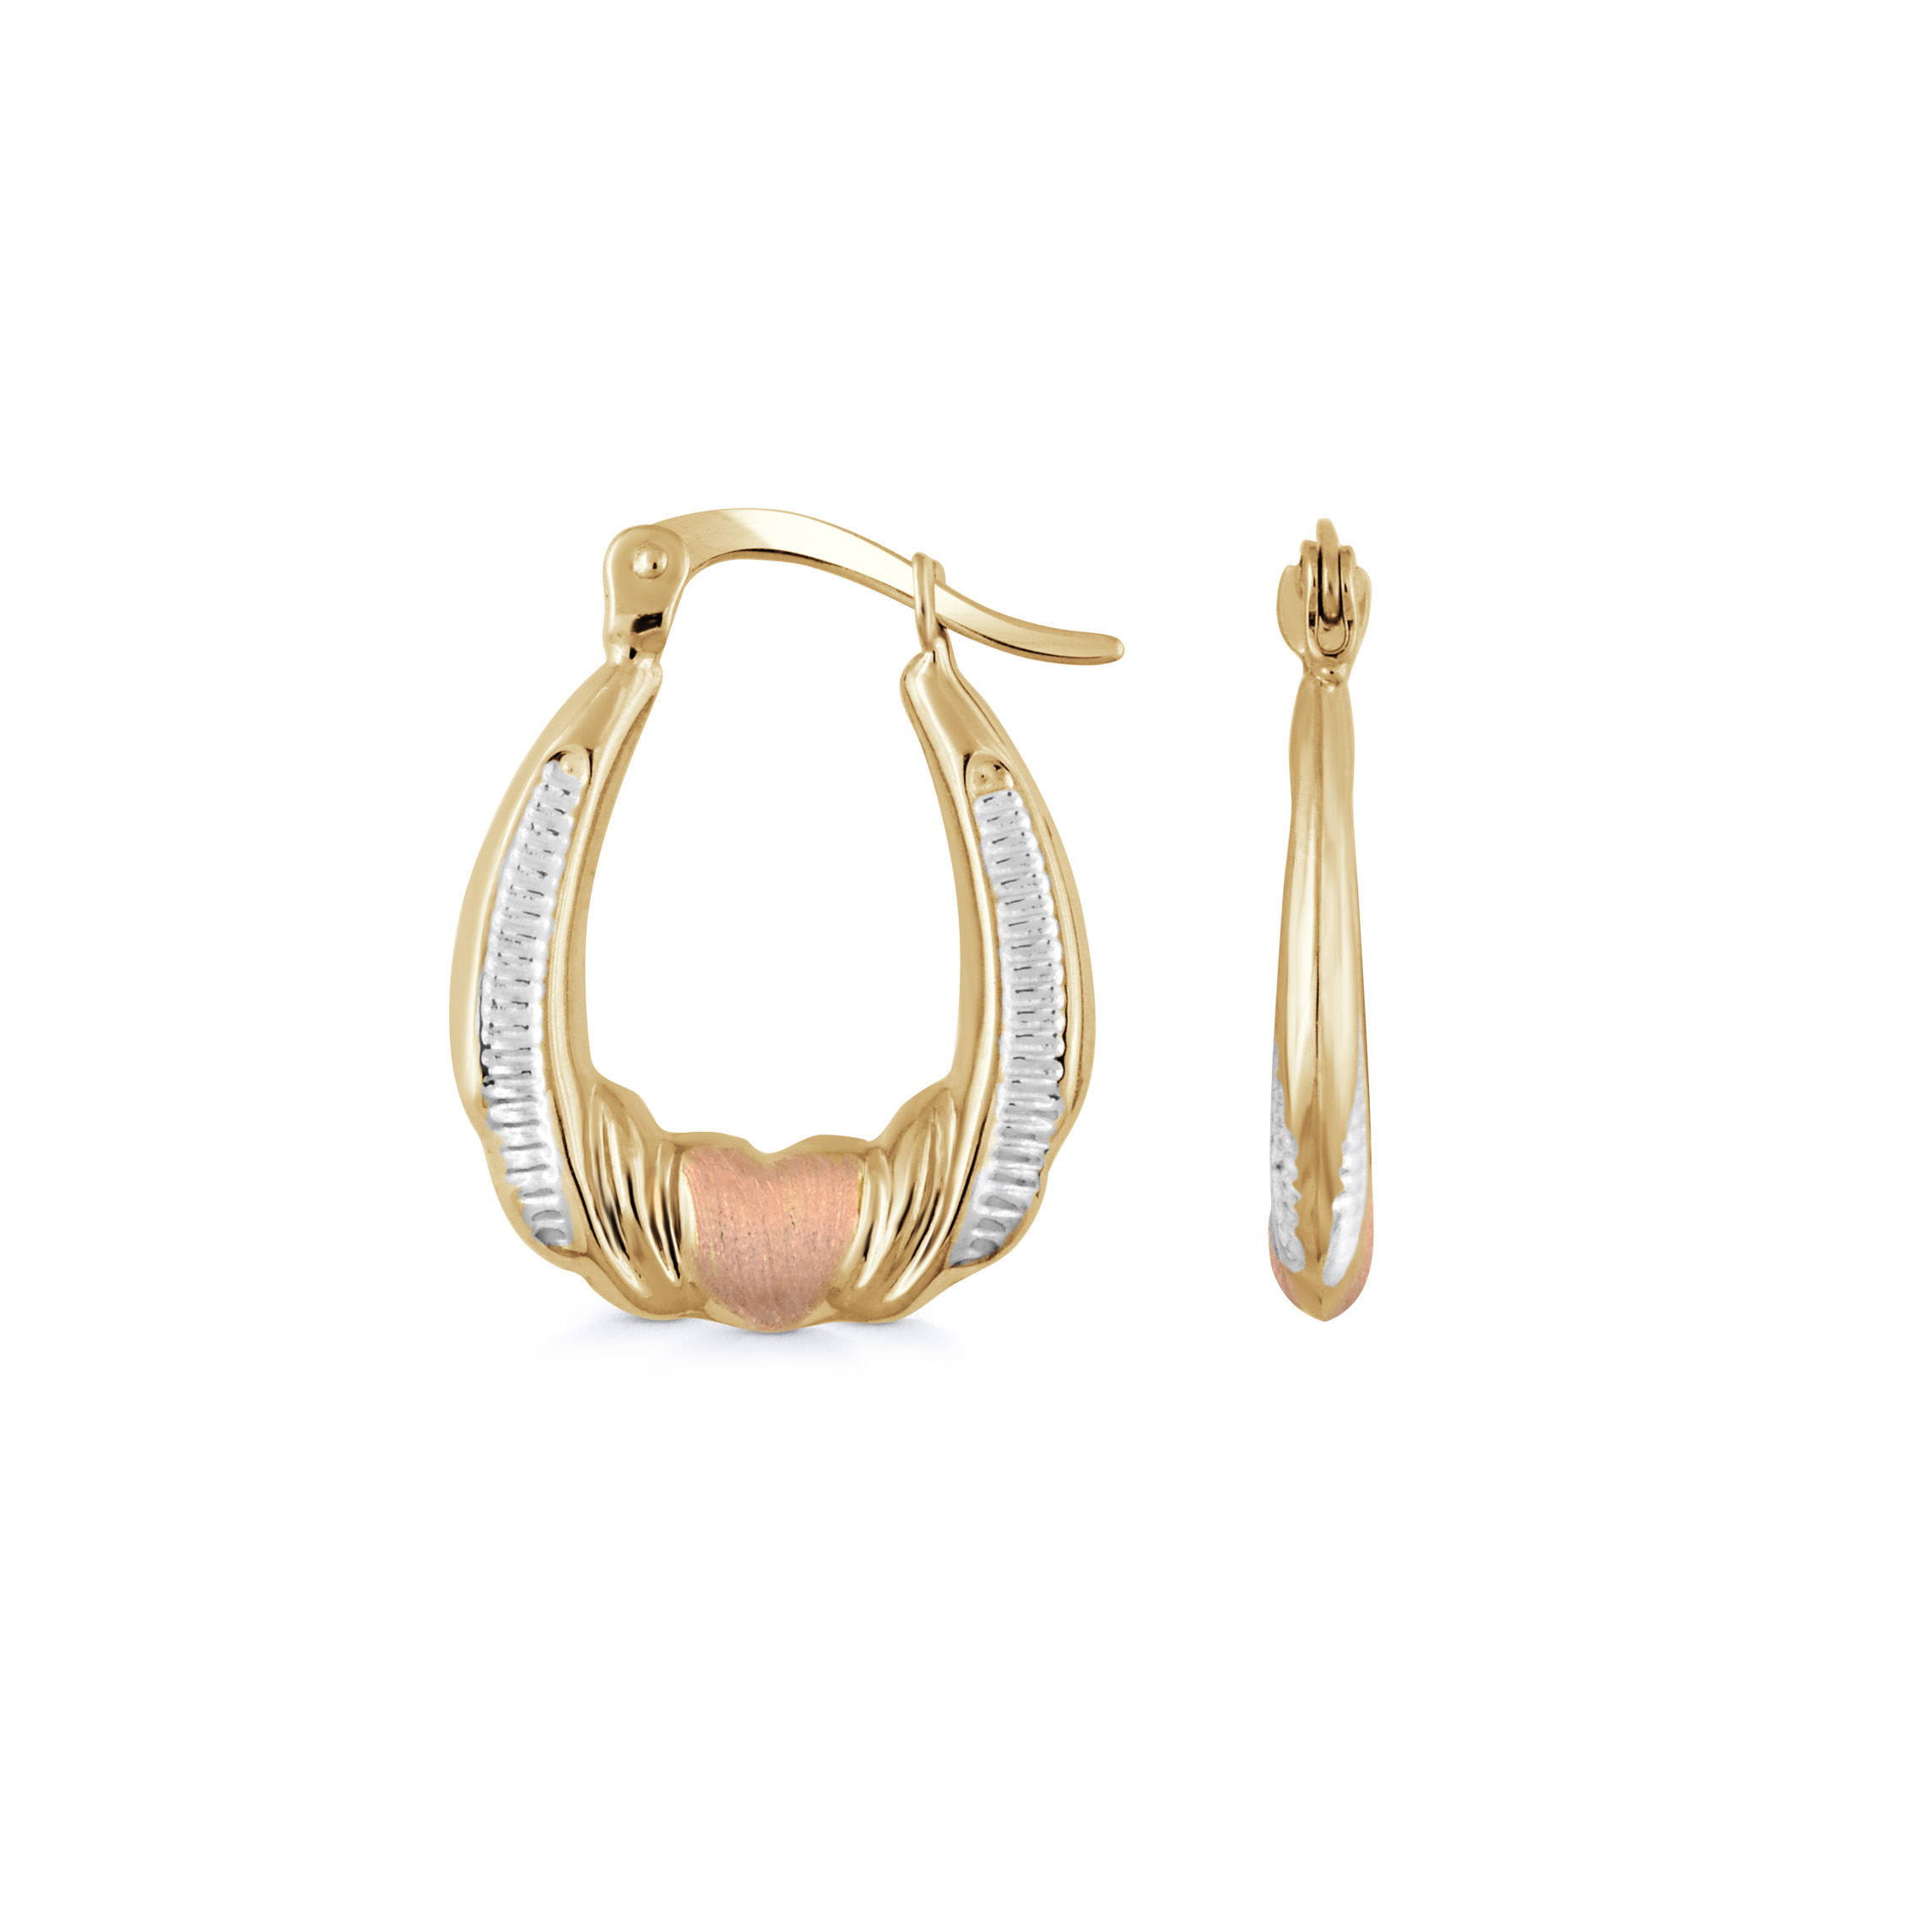 Oval hoop earrings - 10K 3-tone Gold (yellow white and rose)